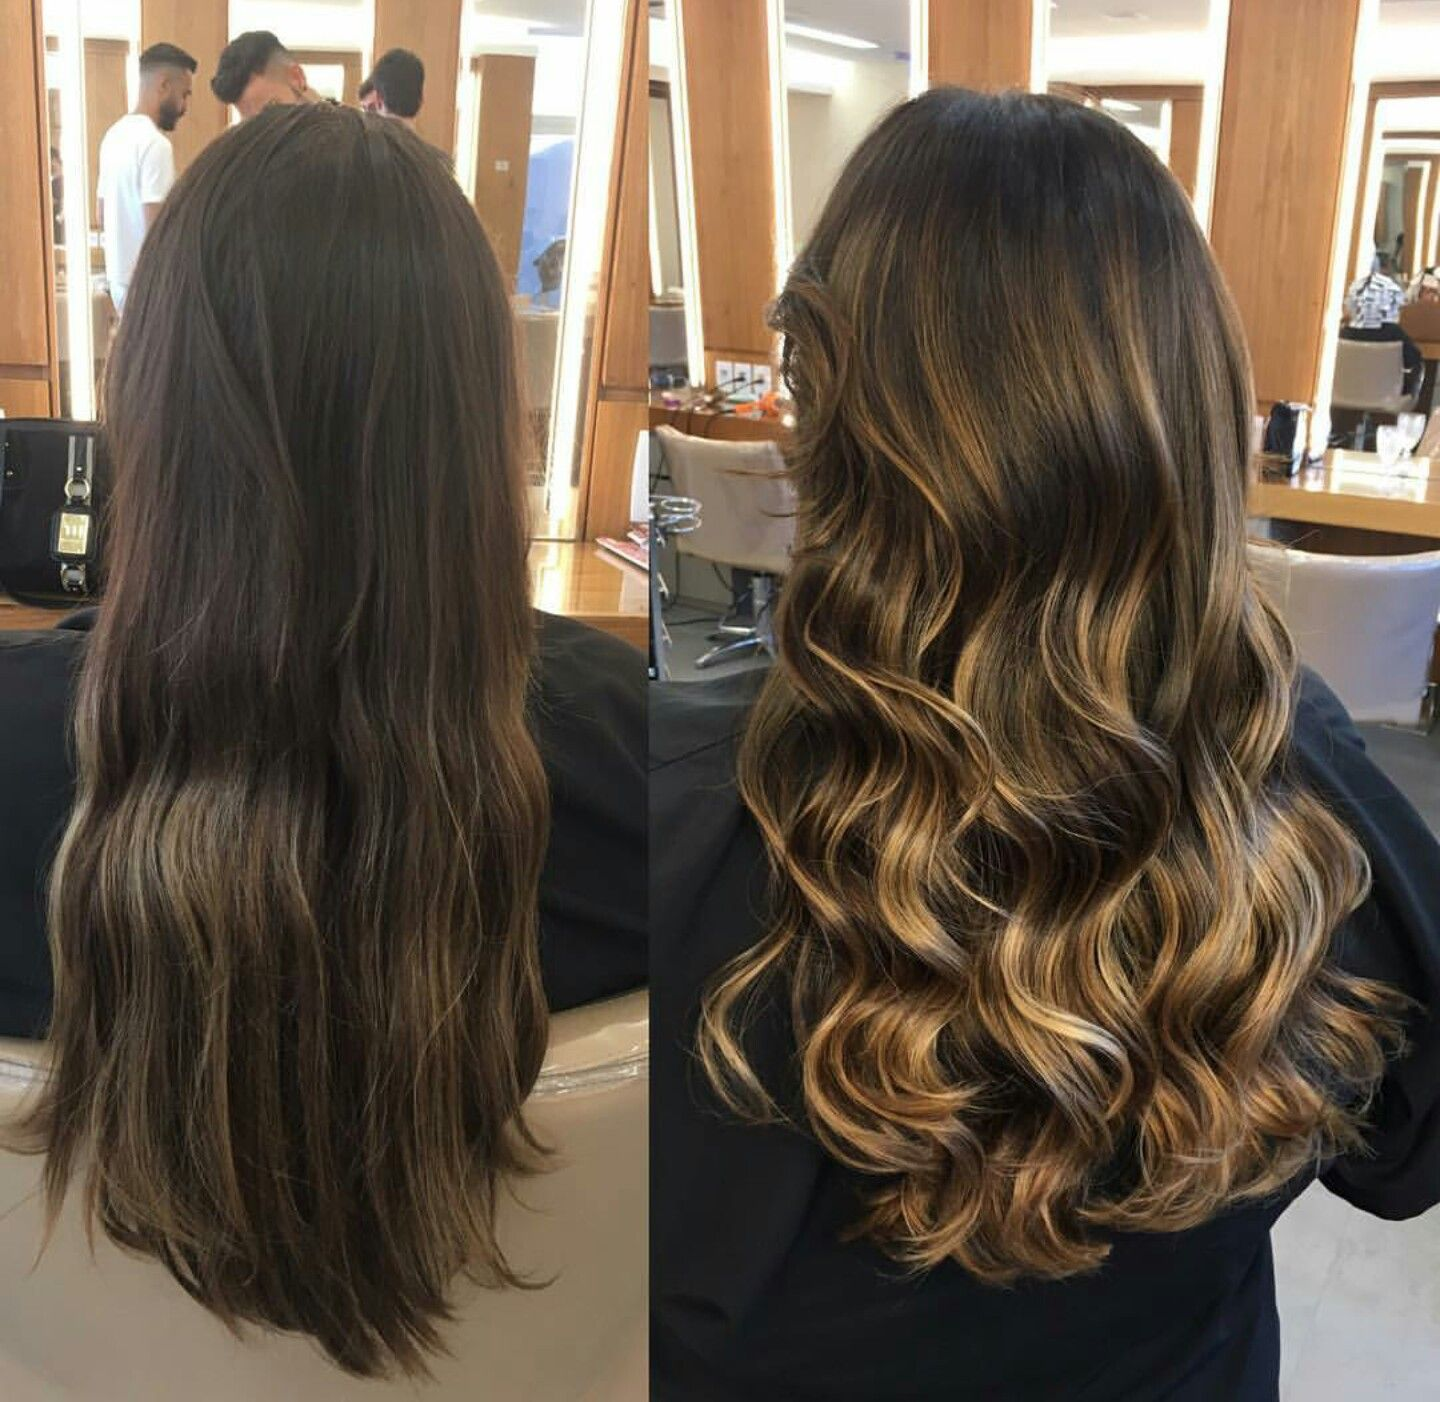 Ombre Balayage Hair Before After Brown Curls Bruenett Blonde Long Shiny credit jacksonnunesoficial ig Brazilian hair cut style winter highlights lowlights